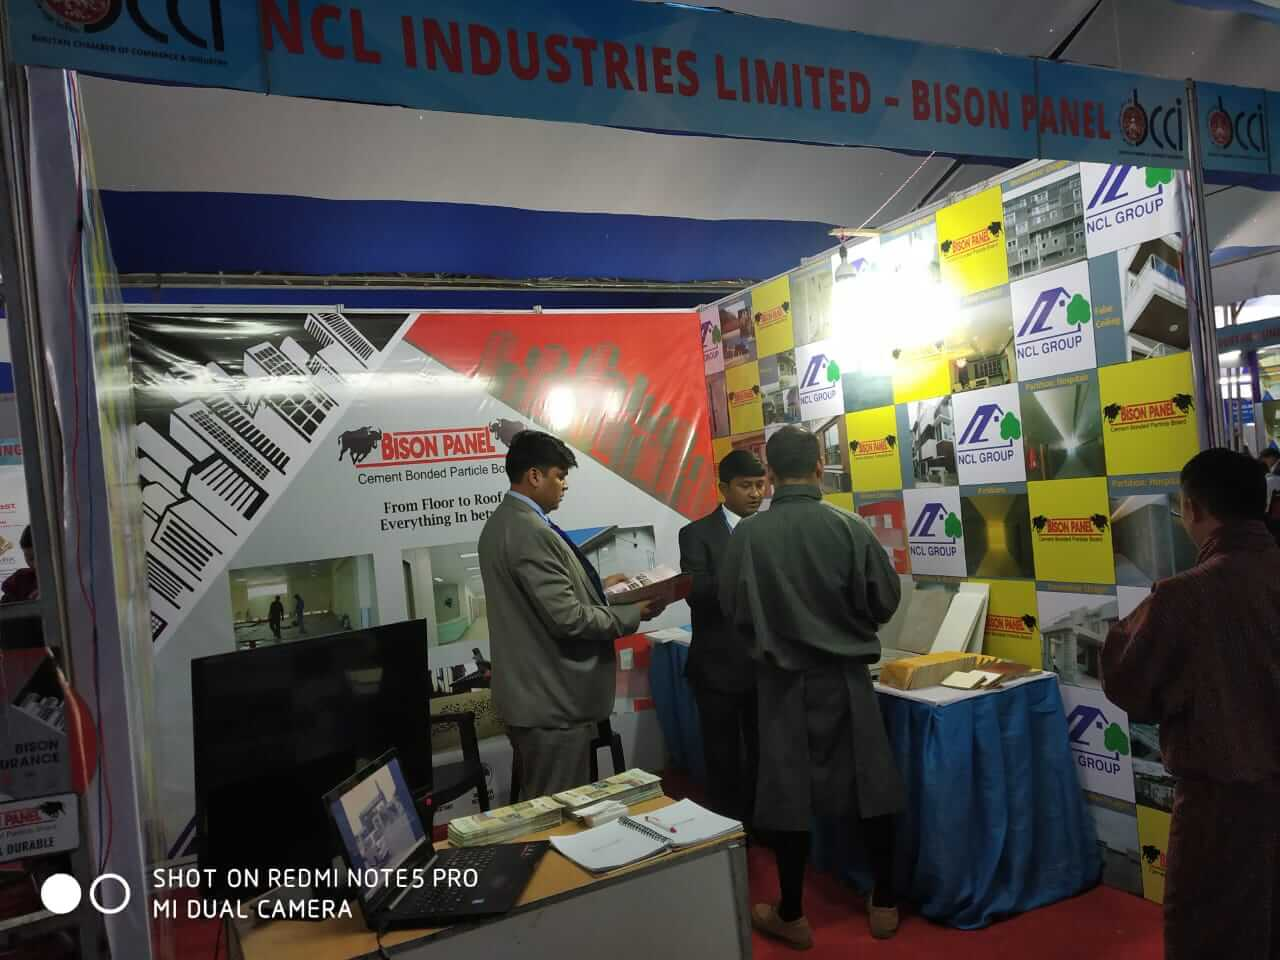 Construction_Expo_2018_-_Participants_from_INDIA,_NEPAL,_BANGALADESH_and_BHUTAN<br>2